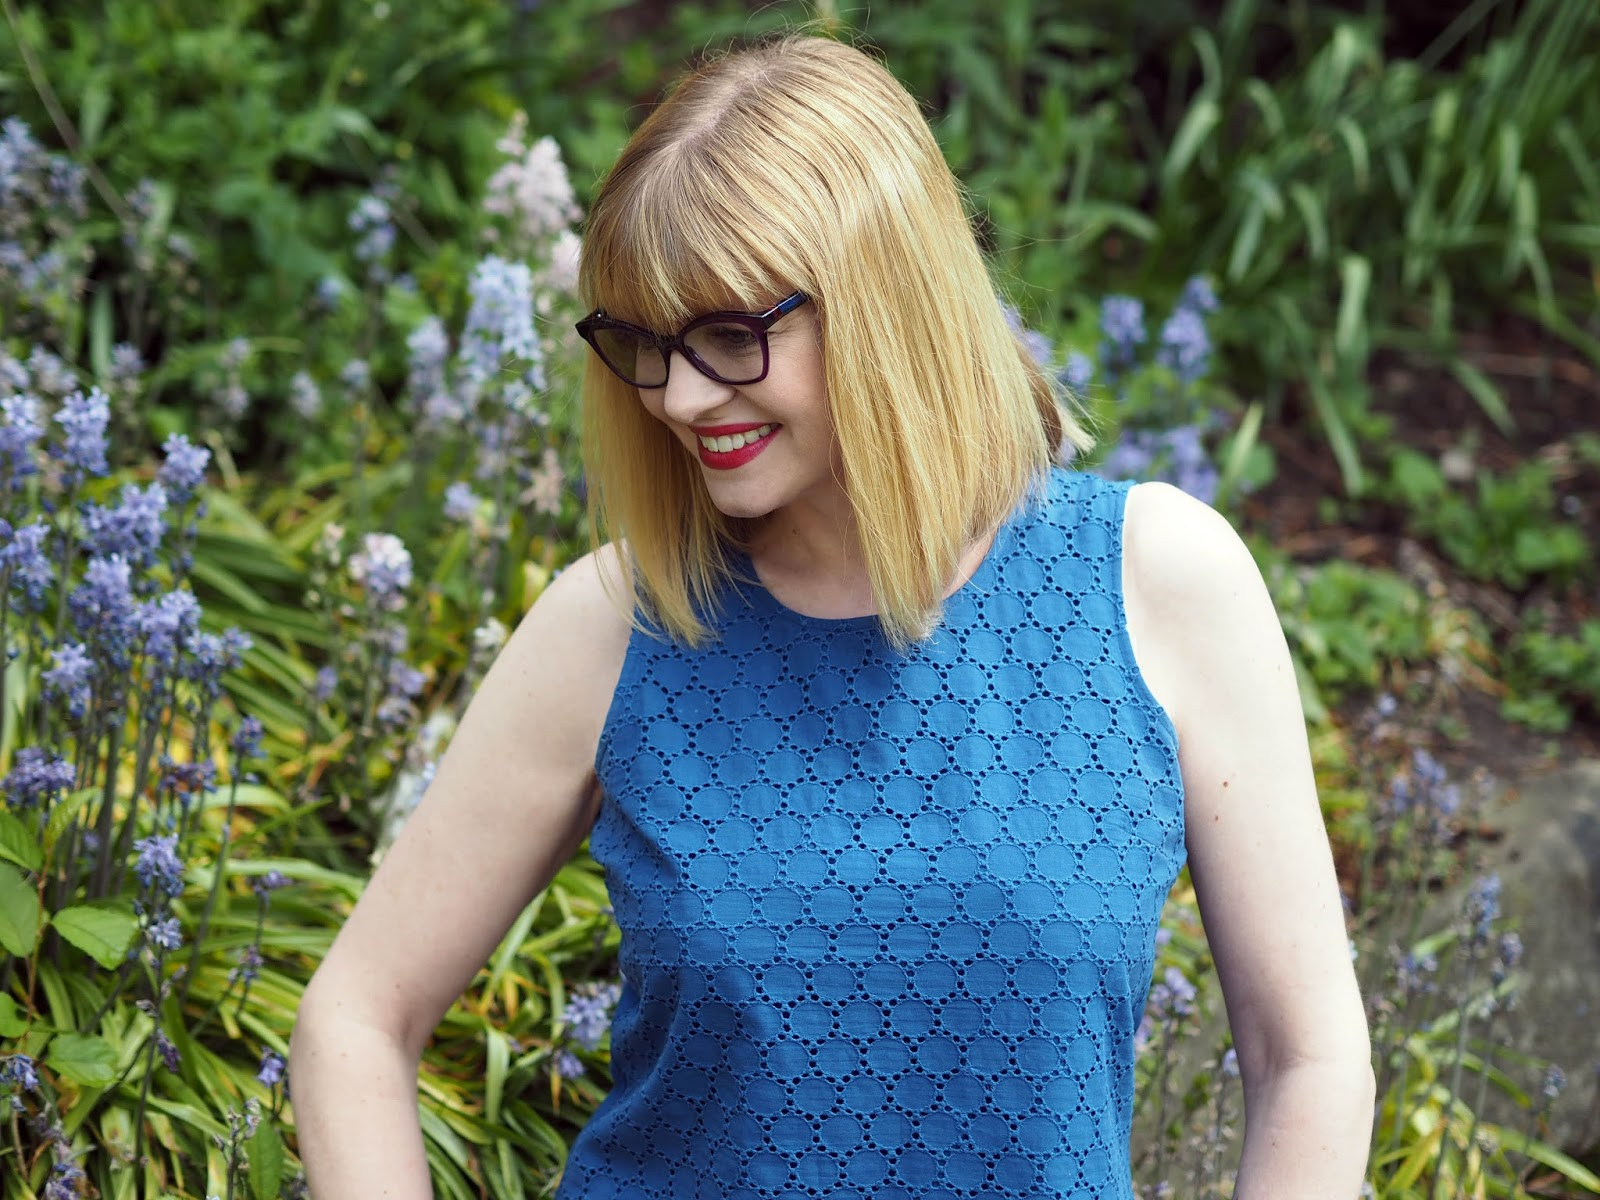 What-Lizzy-Loves-wearing-purple-Caroline-Abram-frames-Style-Colours-photochromic-lenses-sapphire-blue-Transitions